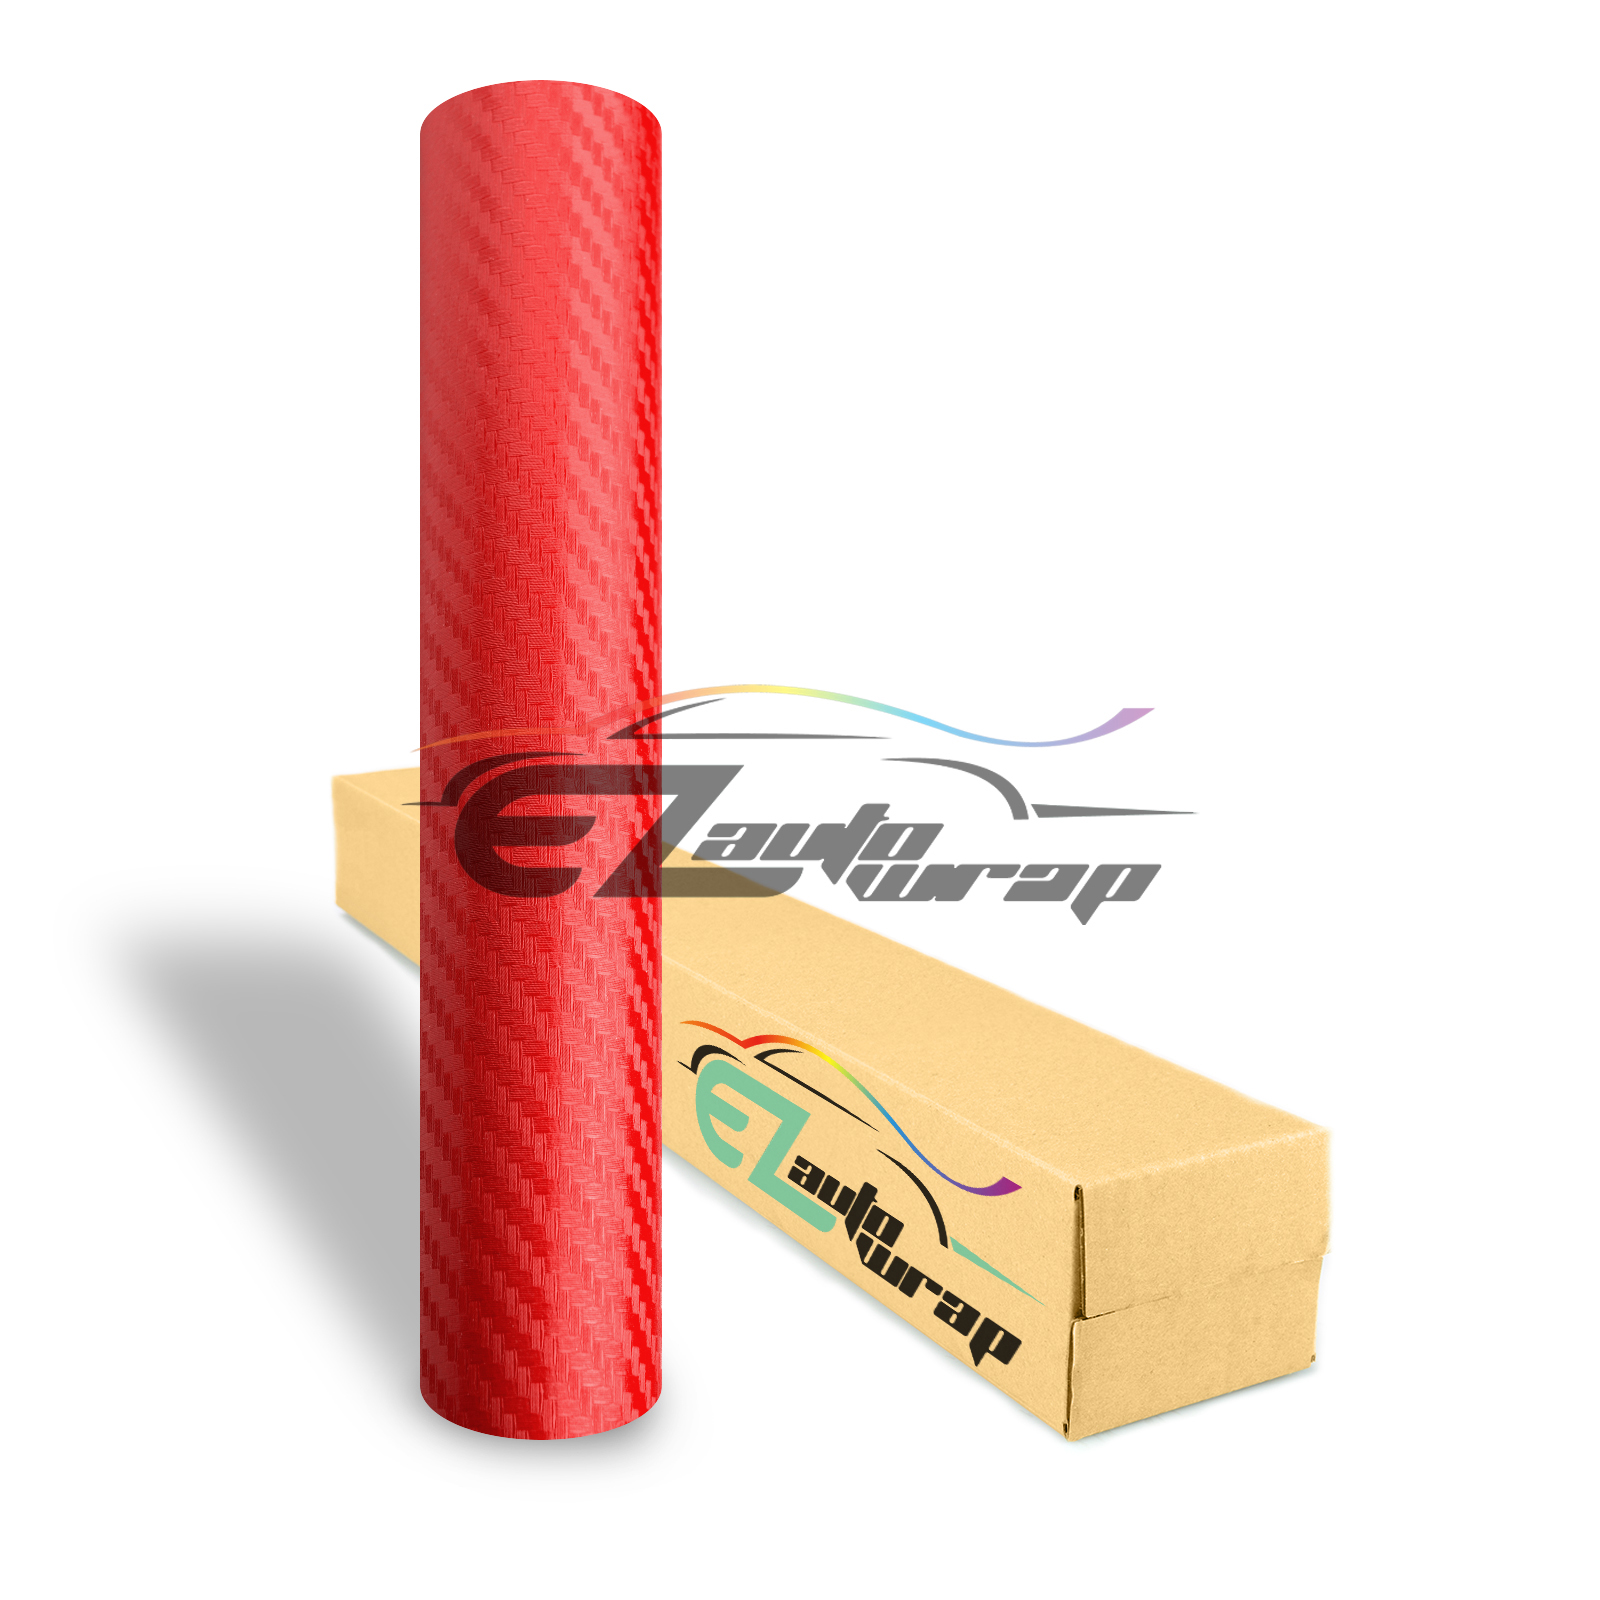 EZAUTOWRAP 3D Red Carbon Fiber Textured Car Vinyl Wrap Sticker Decal Film Sheet Decoration